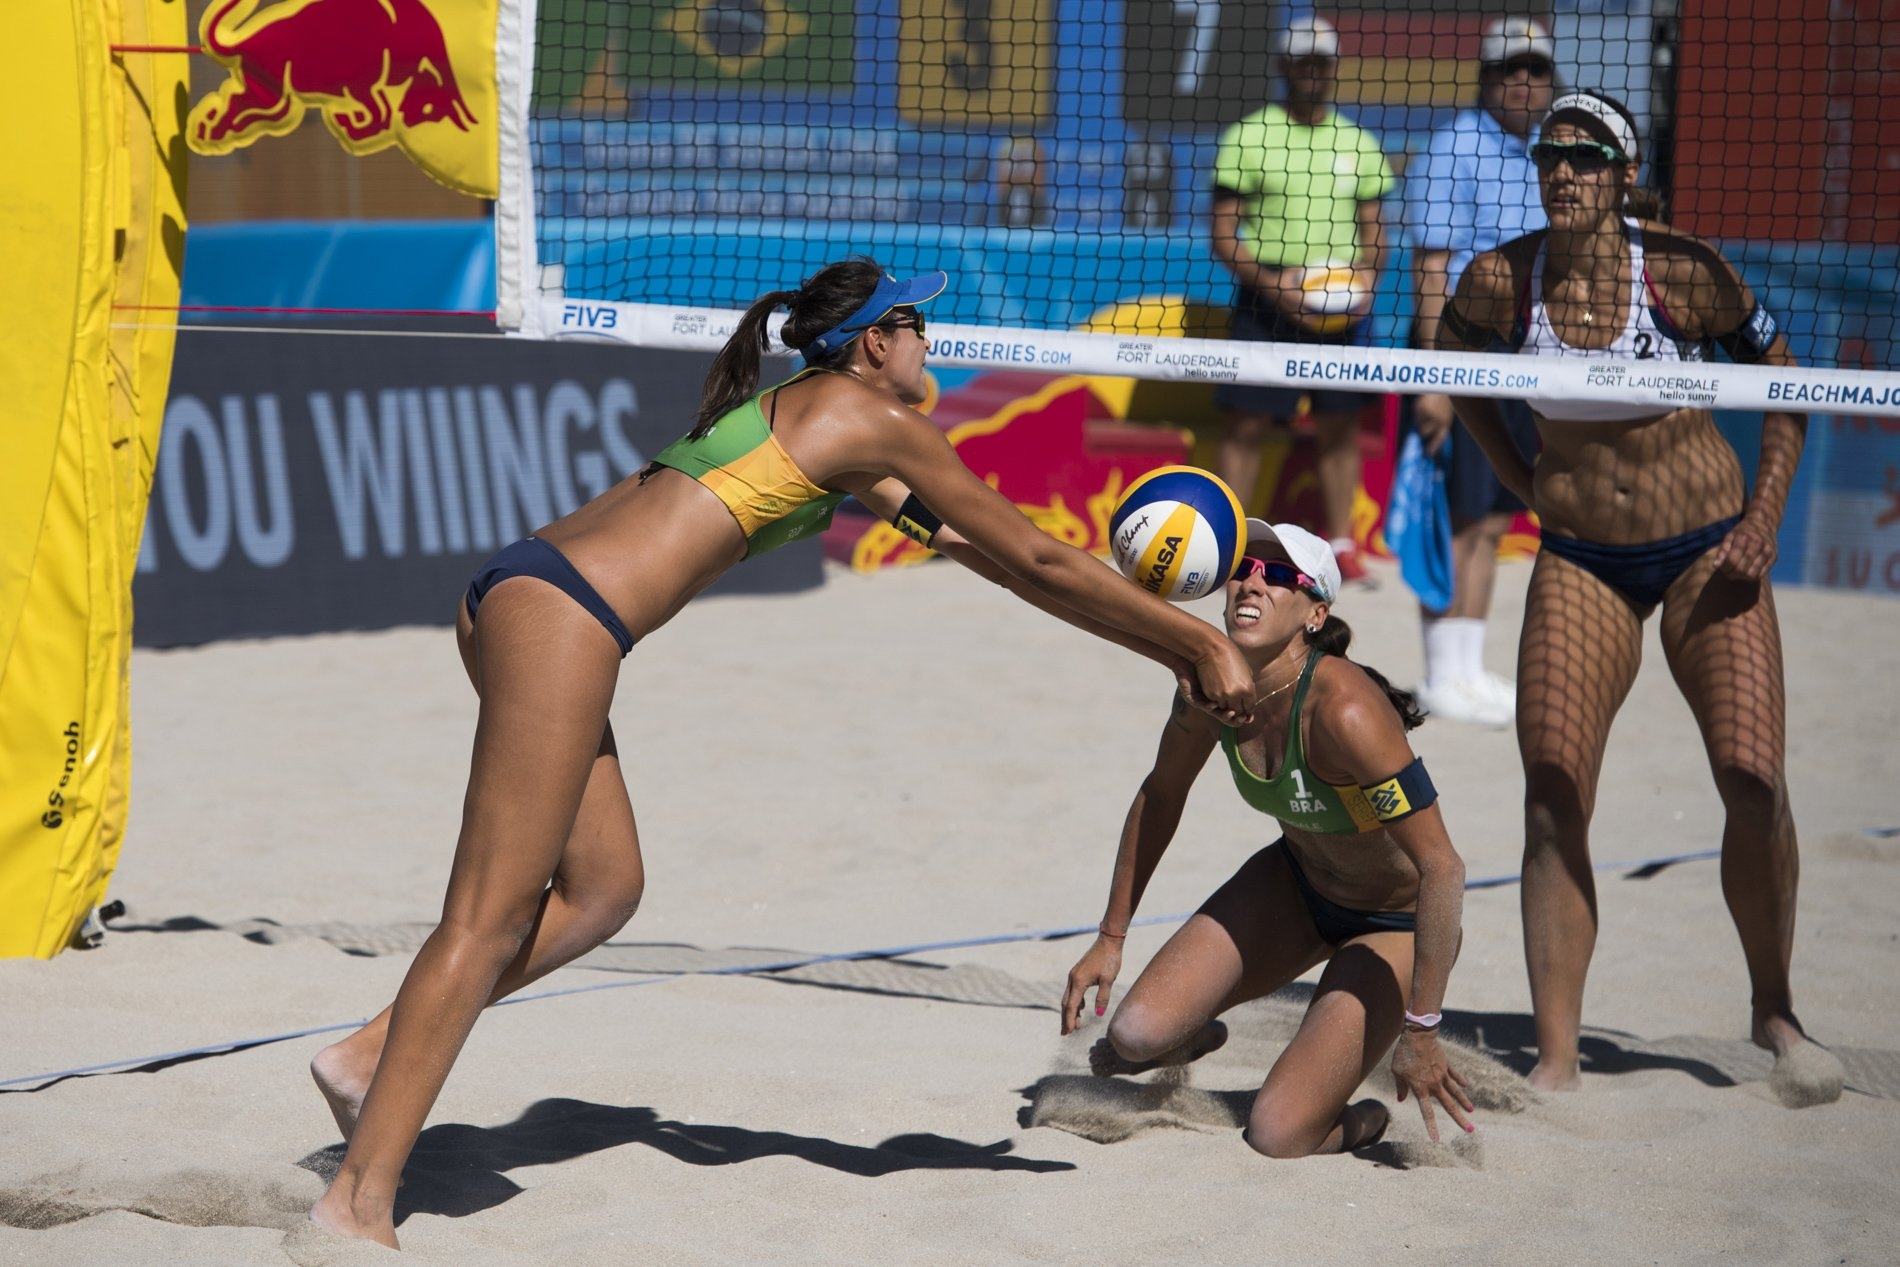 Carol Horta and Taiana prevailed in the last points of the third set to book theirs places in the gold medal match